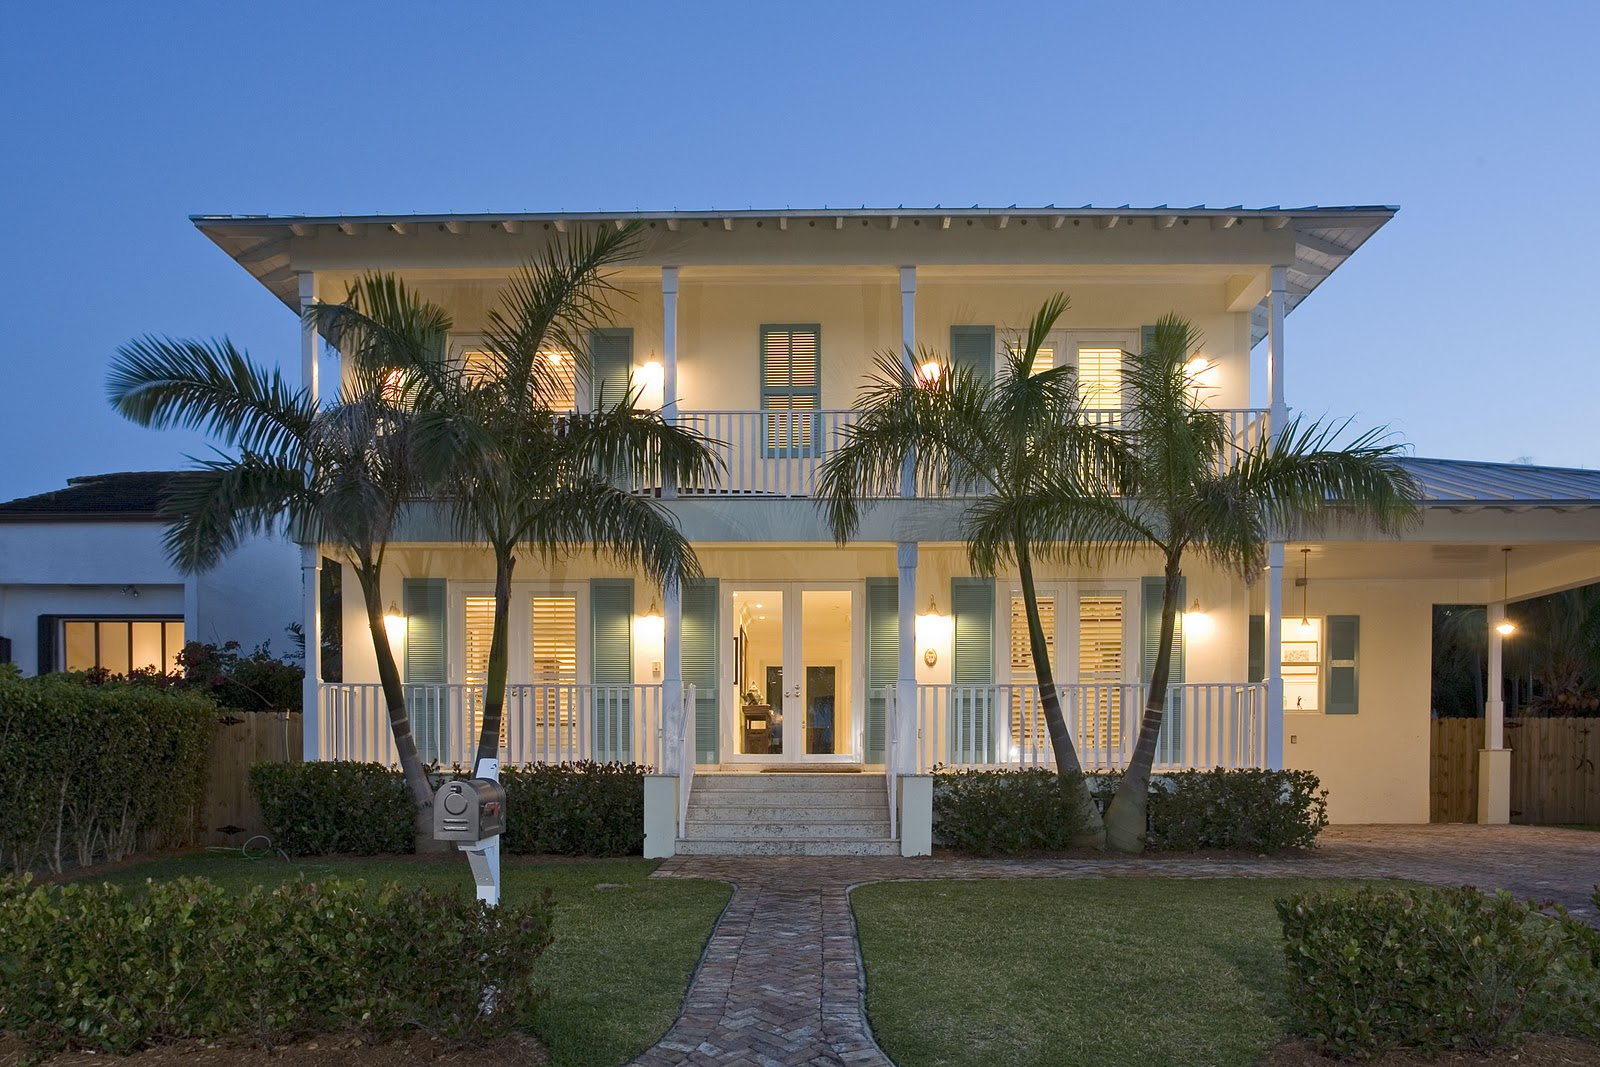 Tropical resort living key biscayne vacation villa rentals for Hawaiian plantation style homes